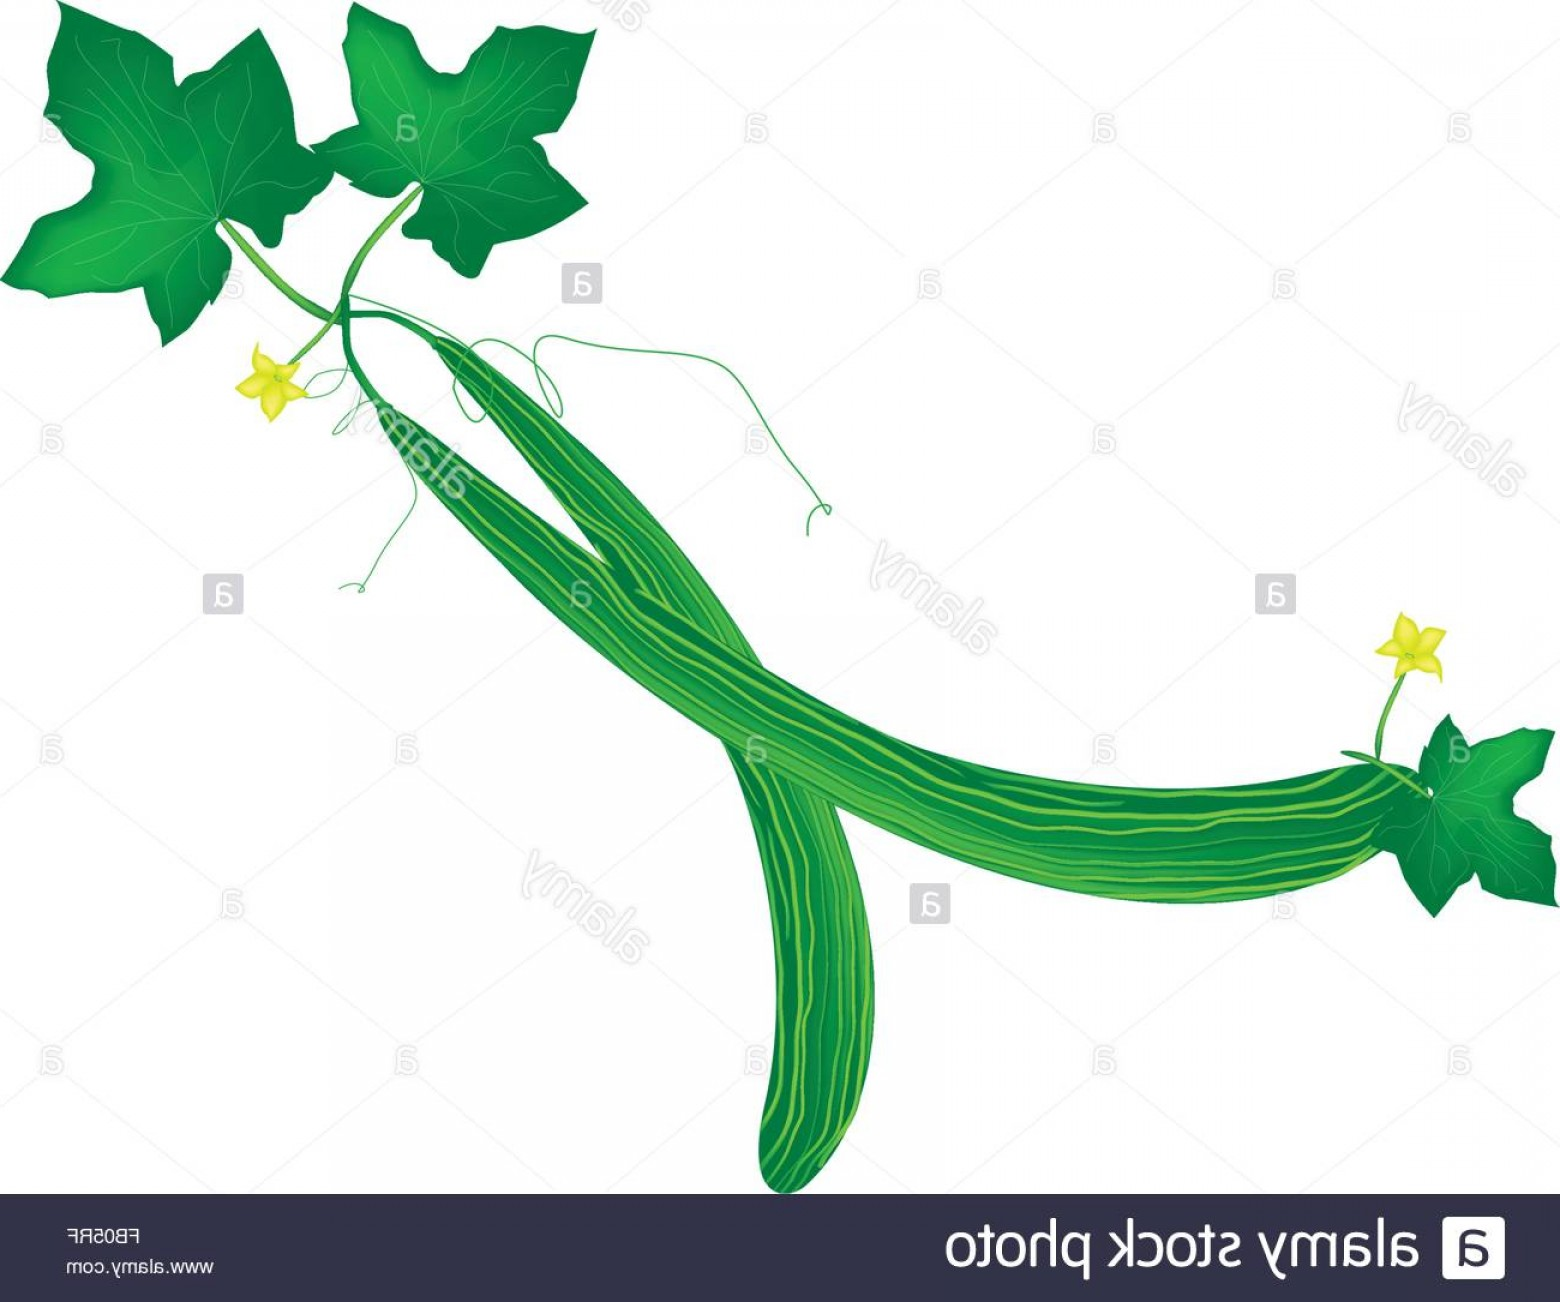 Vine Vector Graphics: Stock Photo Vegetable And Herb Vector Illustration Of Snake Cucumber Or Armenian